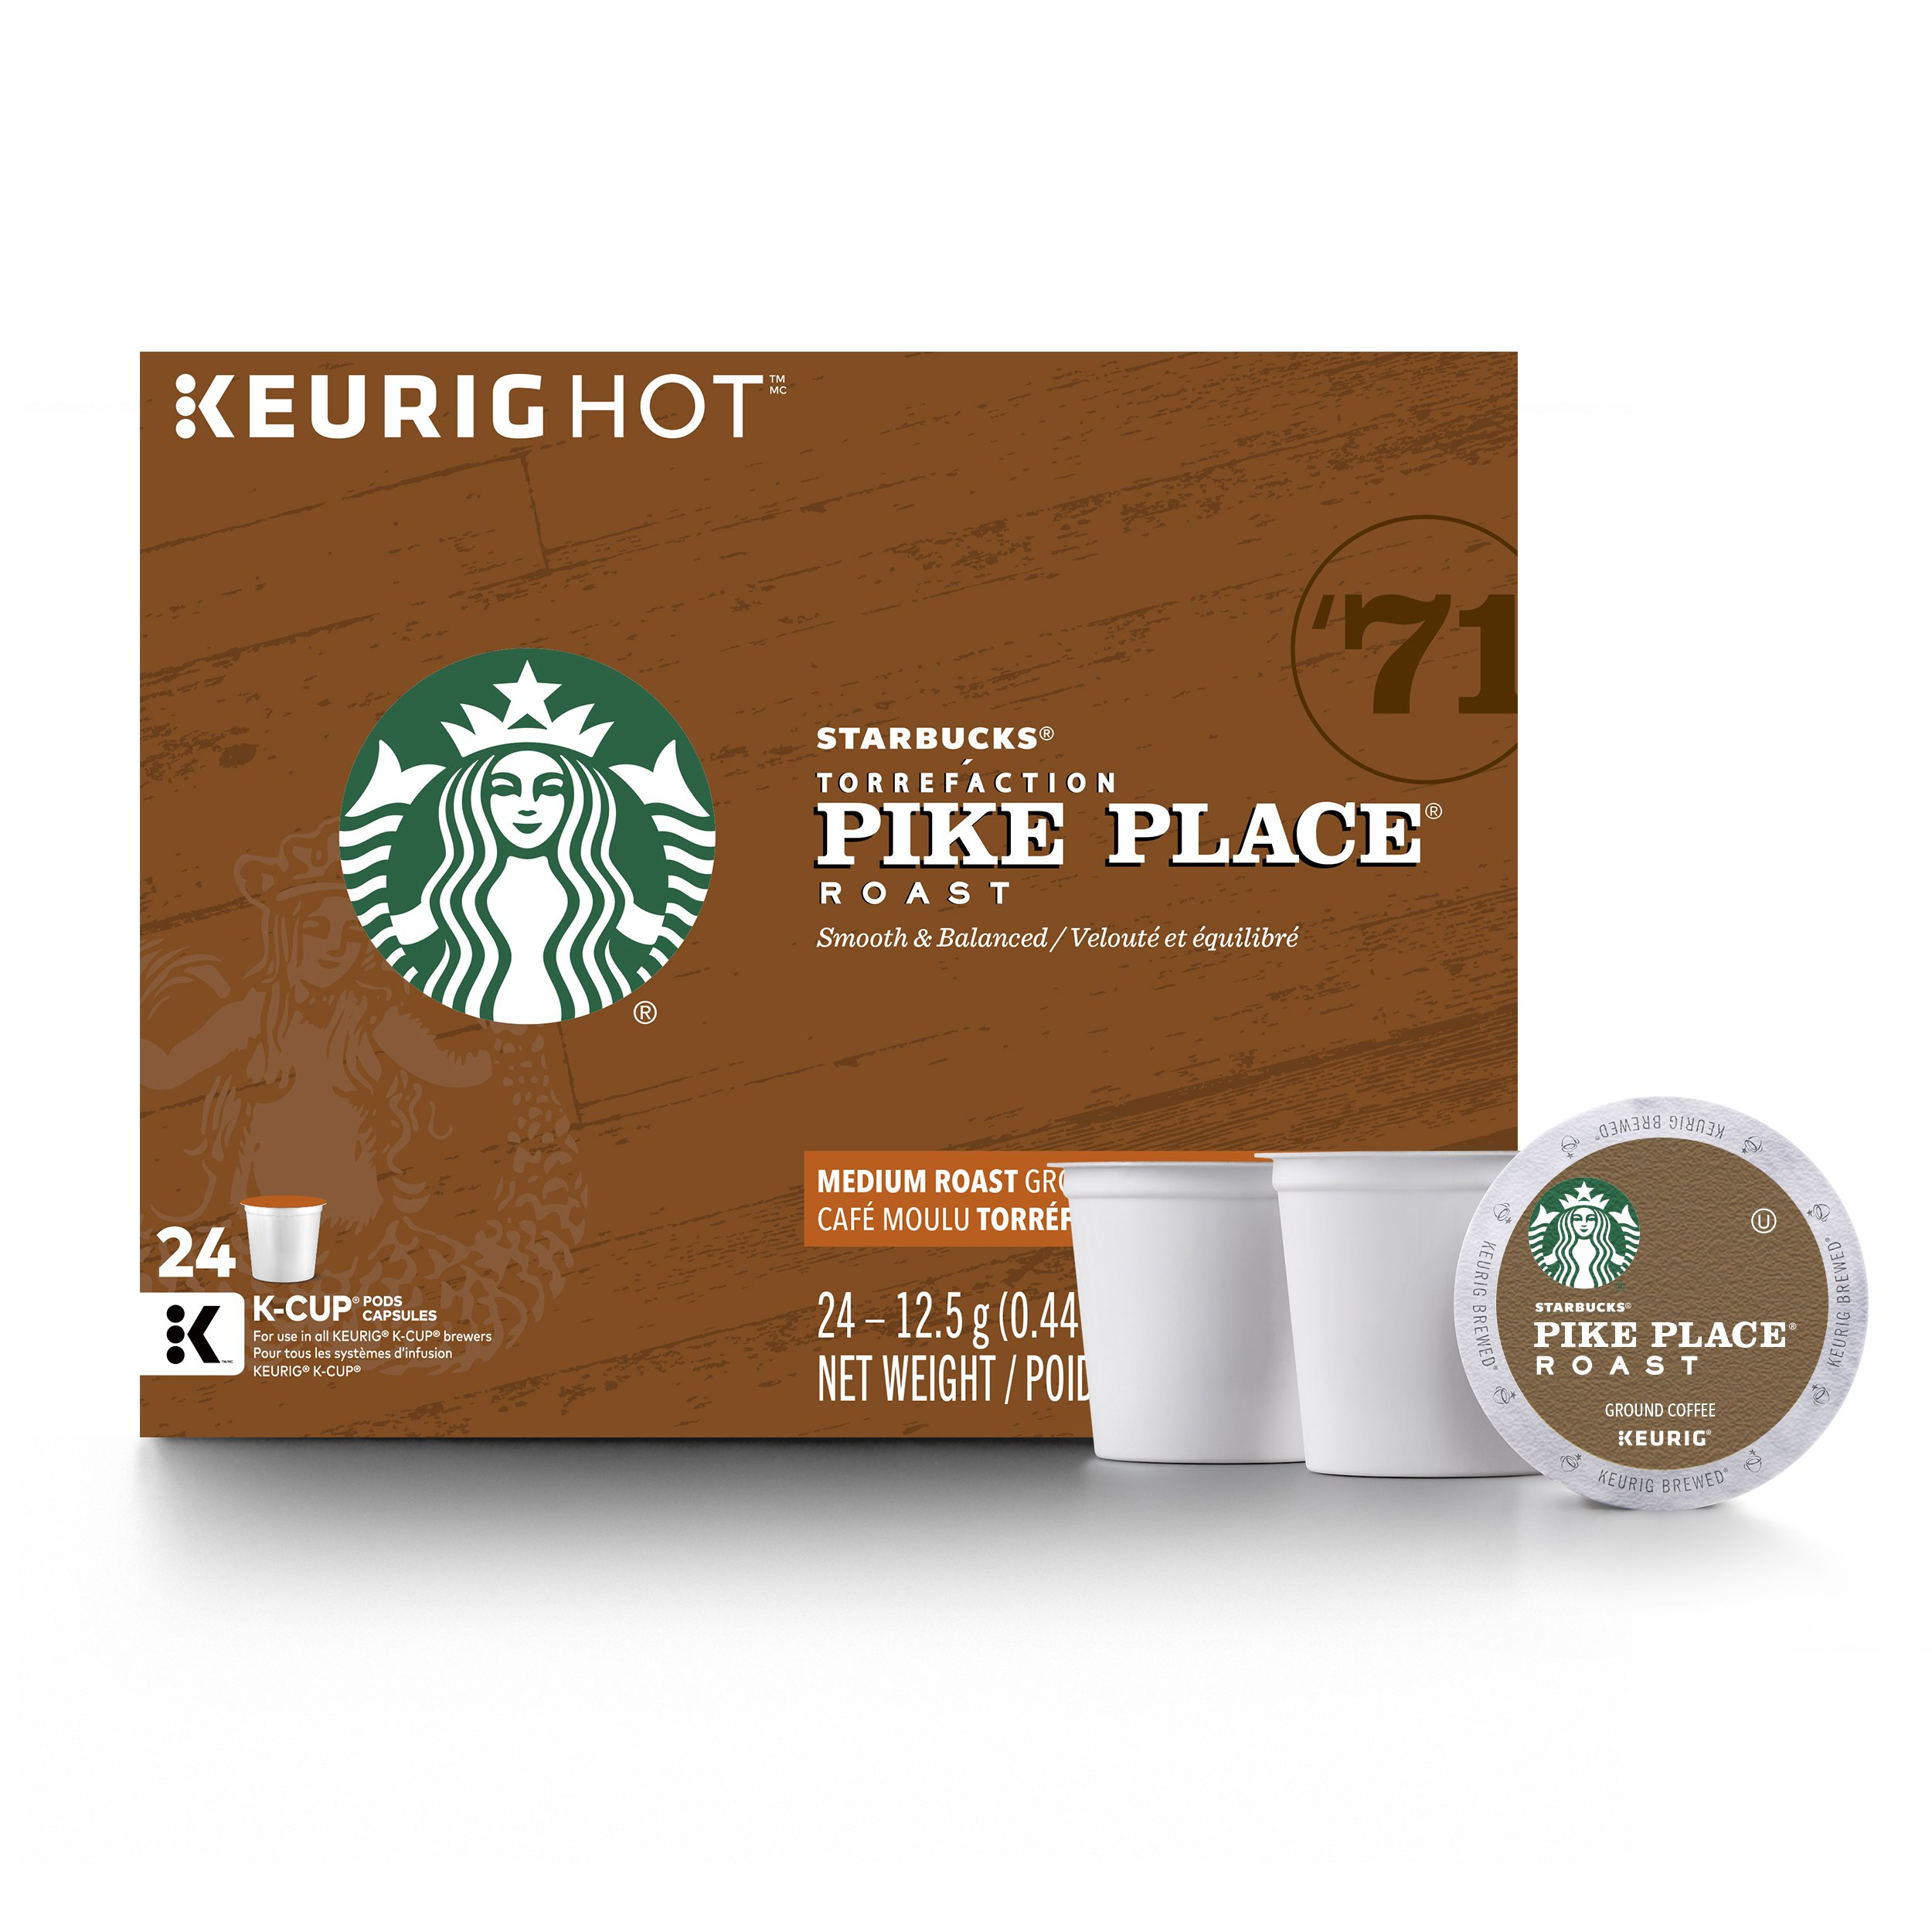 Starbucks Pike Place Roast Medium Roast Single Cup Coffee for Keurig Brewers, 4 boxes of 24 (96 total K-Cup pods) by Starbucks